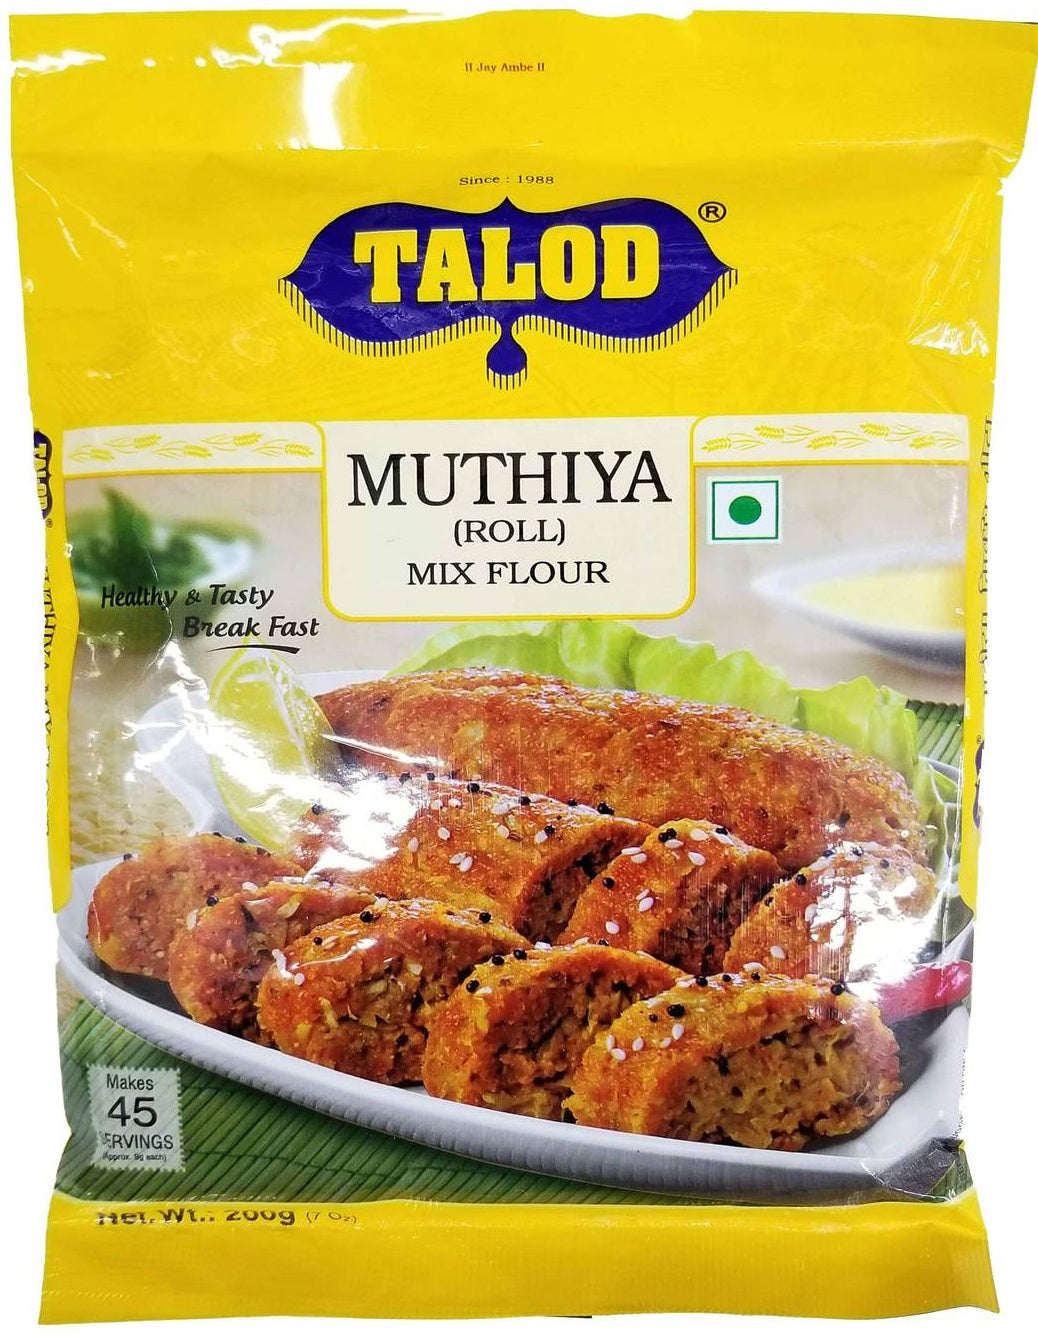 Muthiya (Roll) Mix Flour